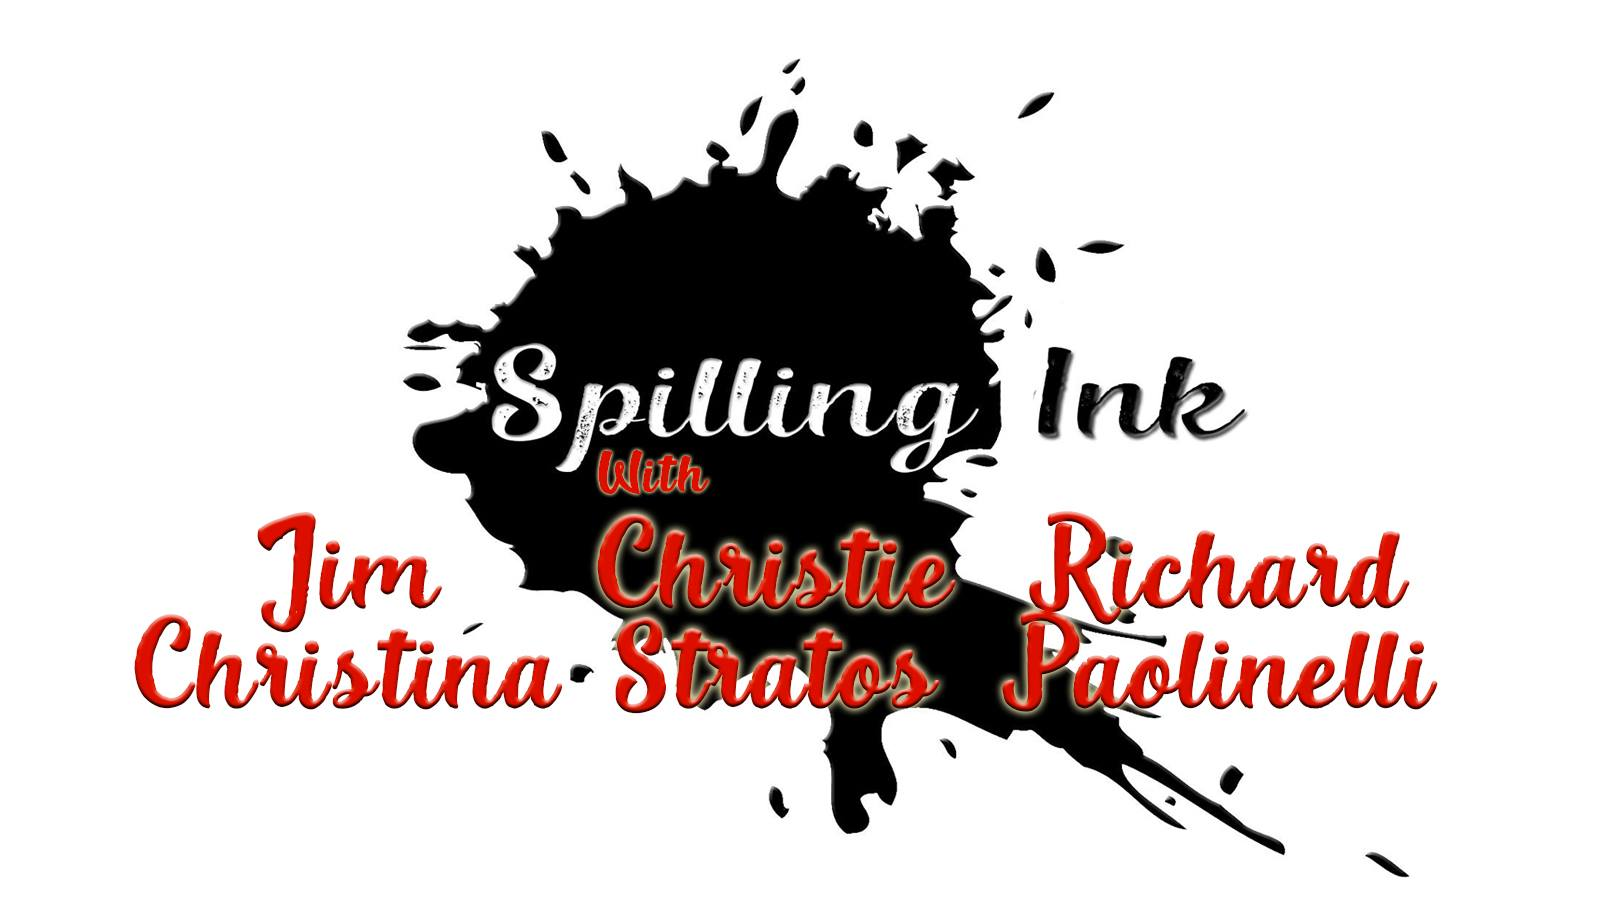 Authors Interviewing Authors with Jim Christina, Christie Stratos, and Richard Paolinelli